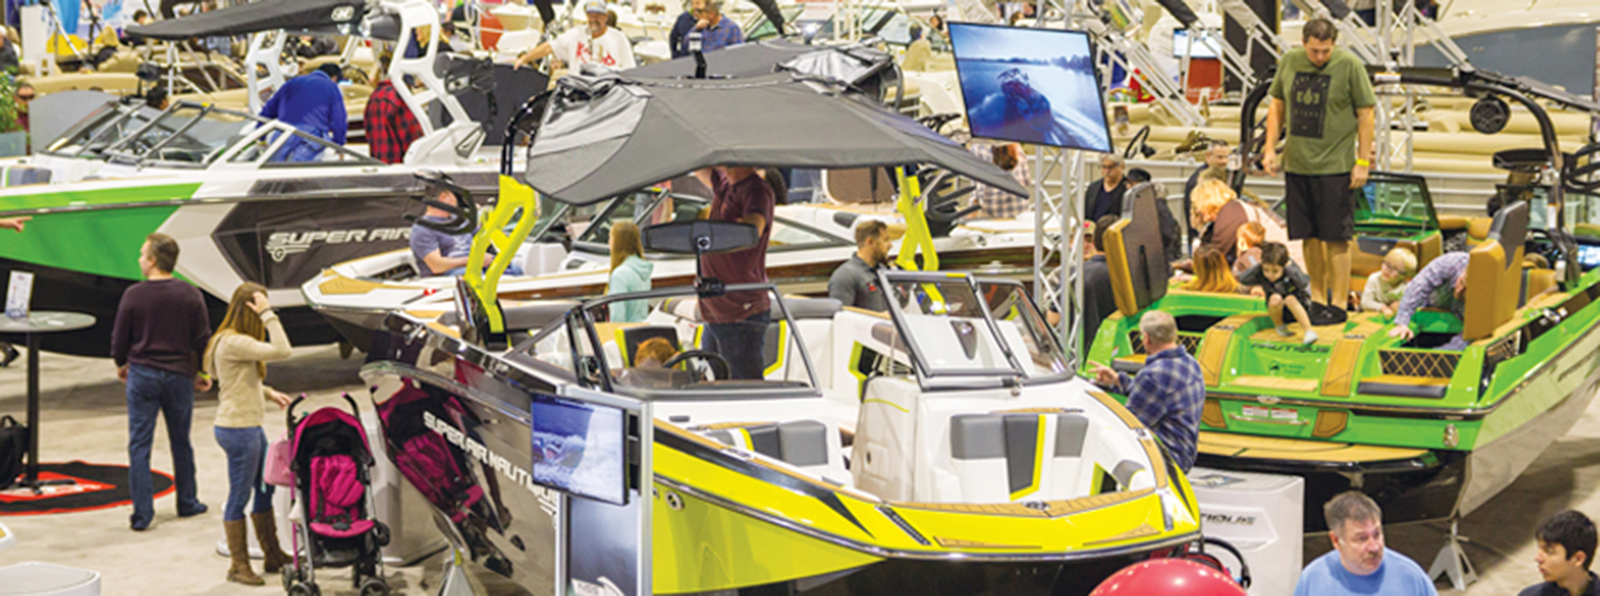 boat-show-banner